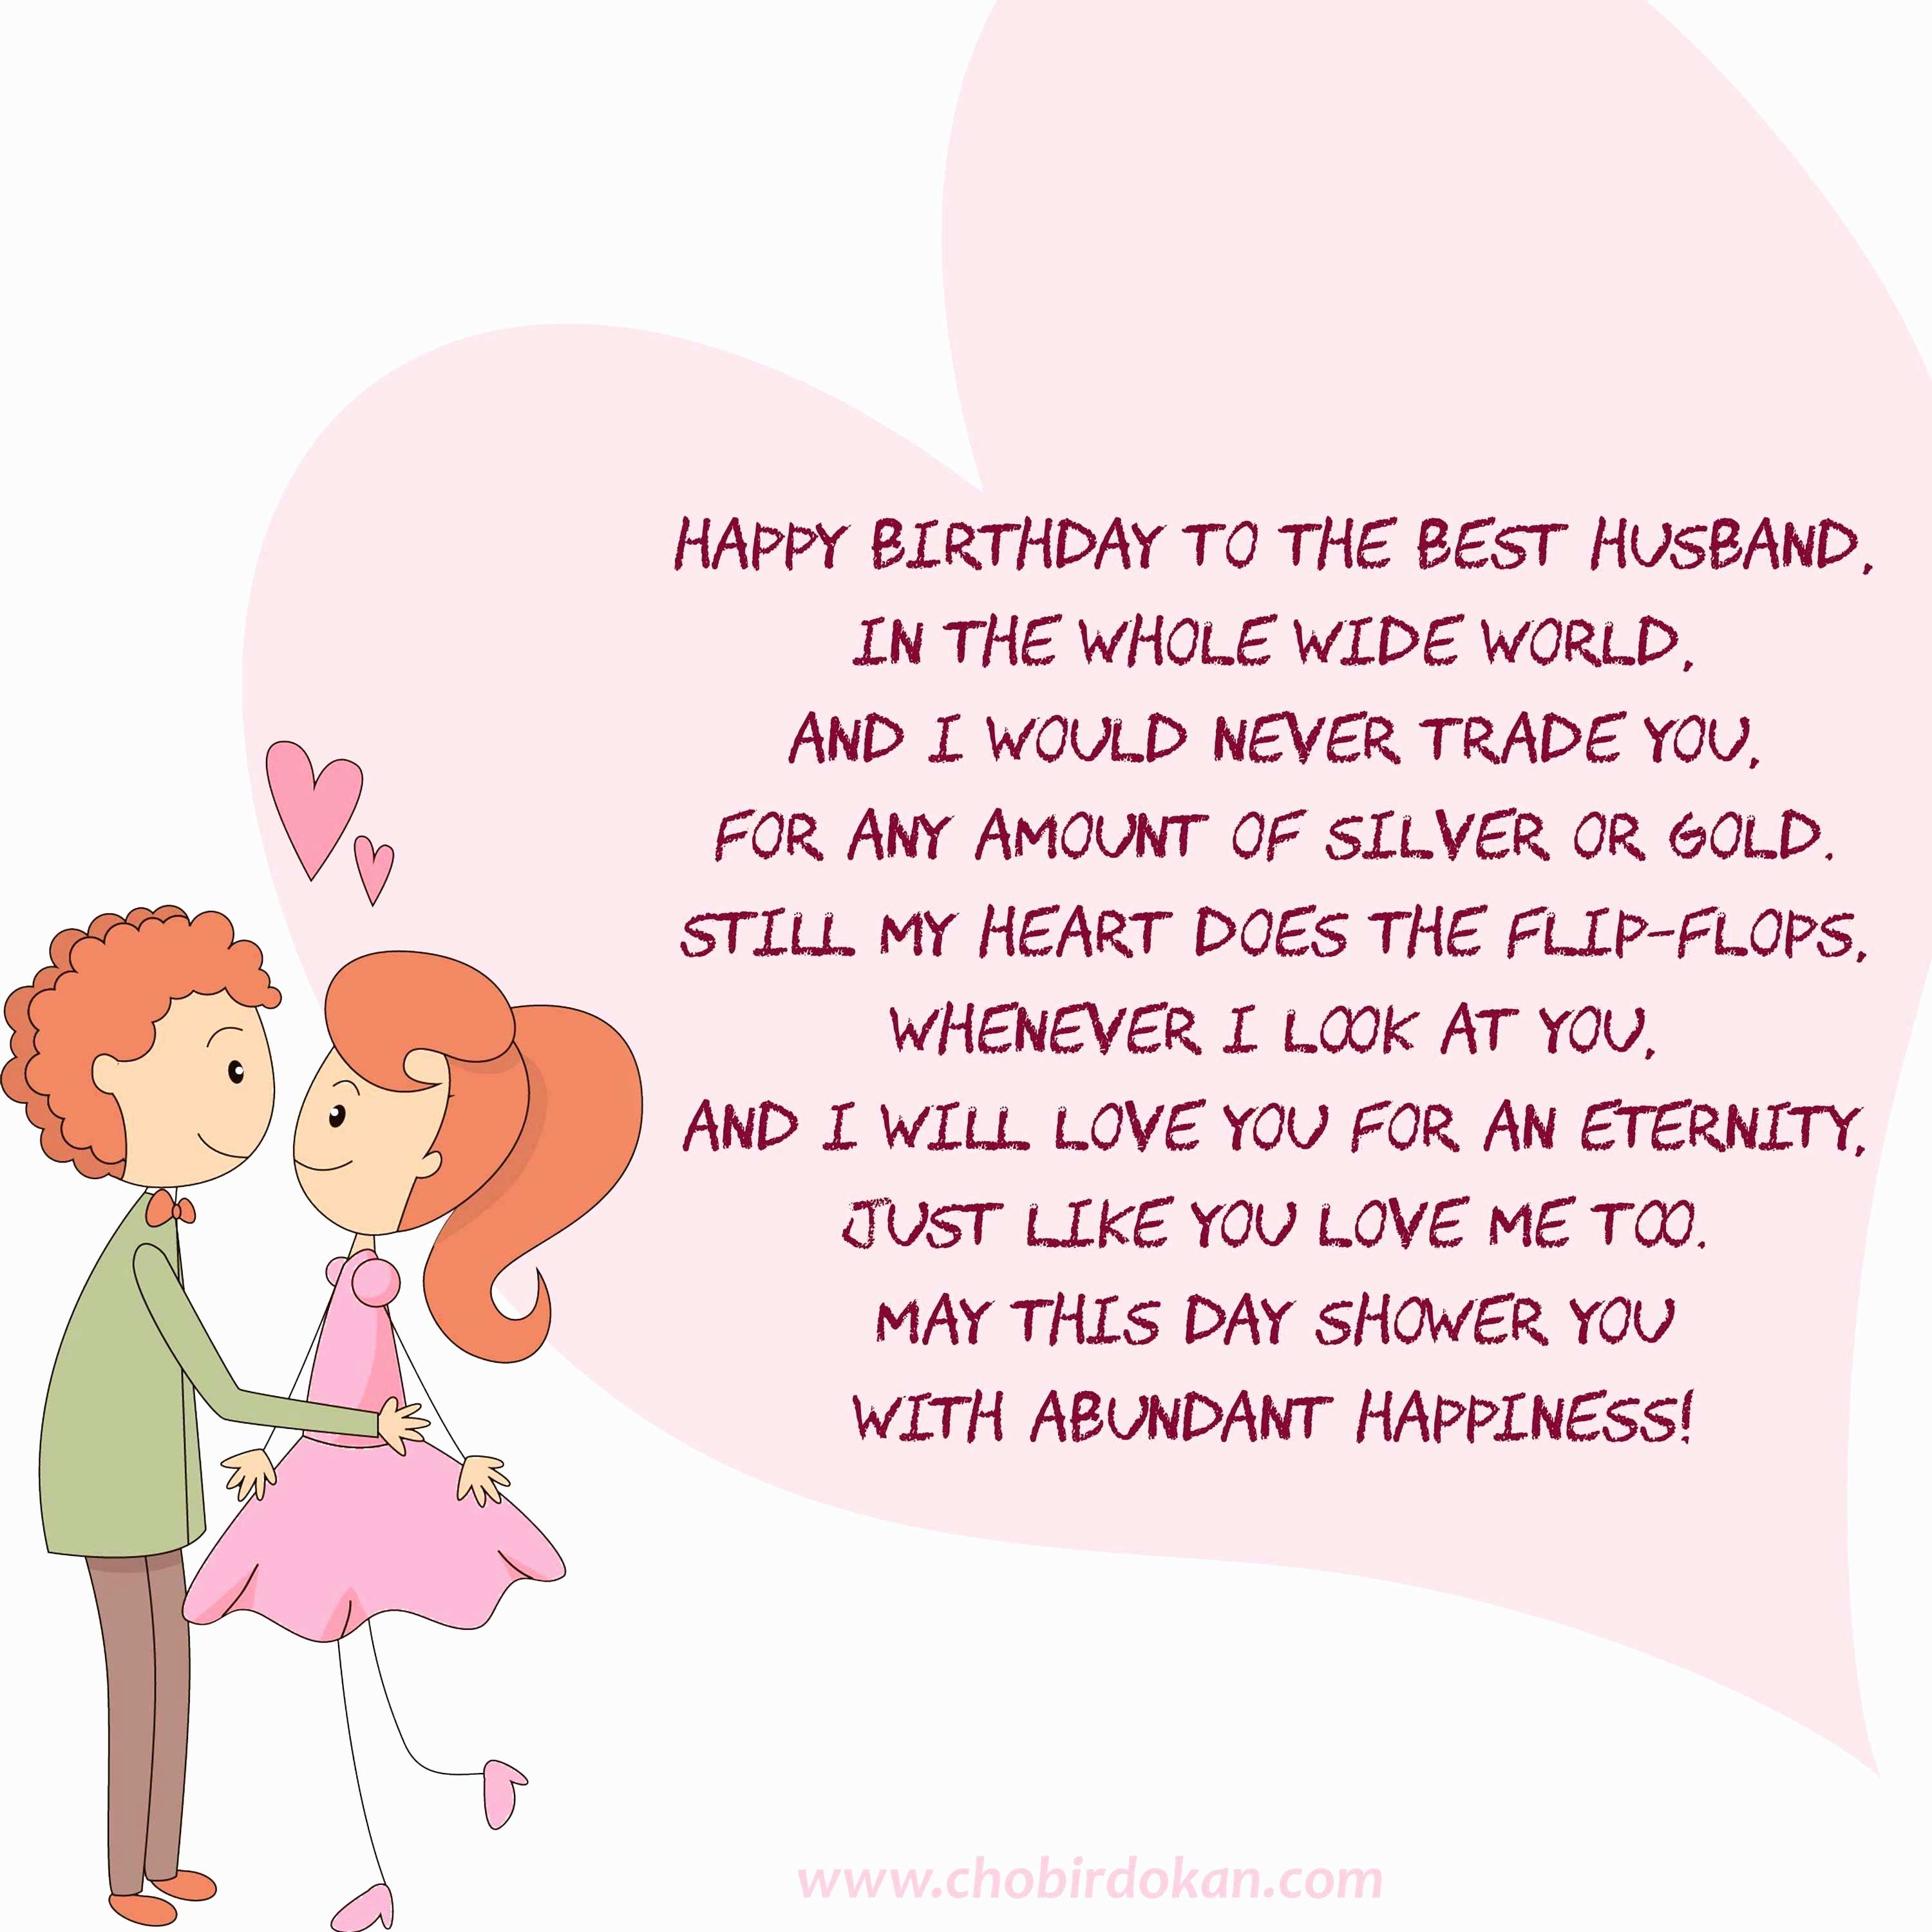 happy birthday to the best brother in the world poem ; birthday-wishes-for-my-brother-elegant-are-you-looking-for-some-cute-happy-birthday-poems-for-him-wishing-of-birthday-wishes-for-my-brother